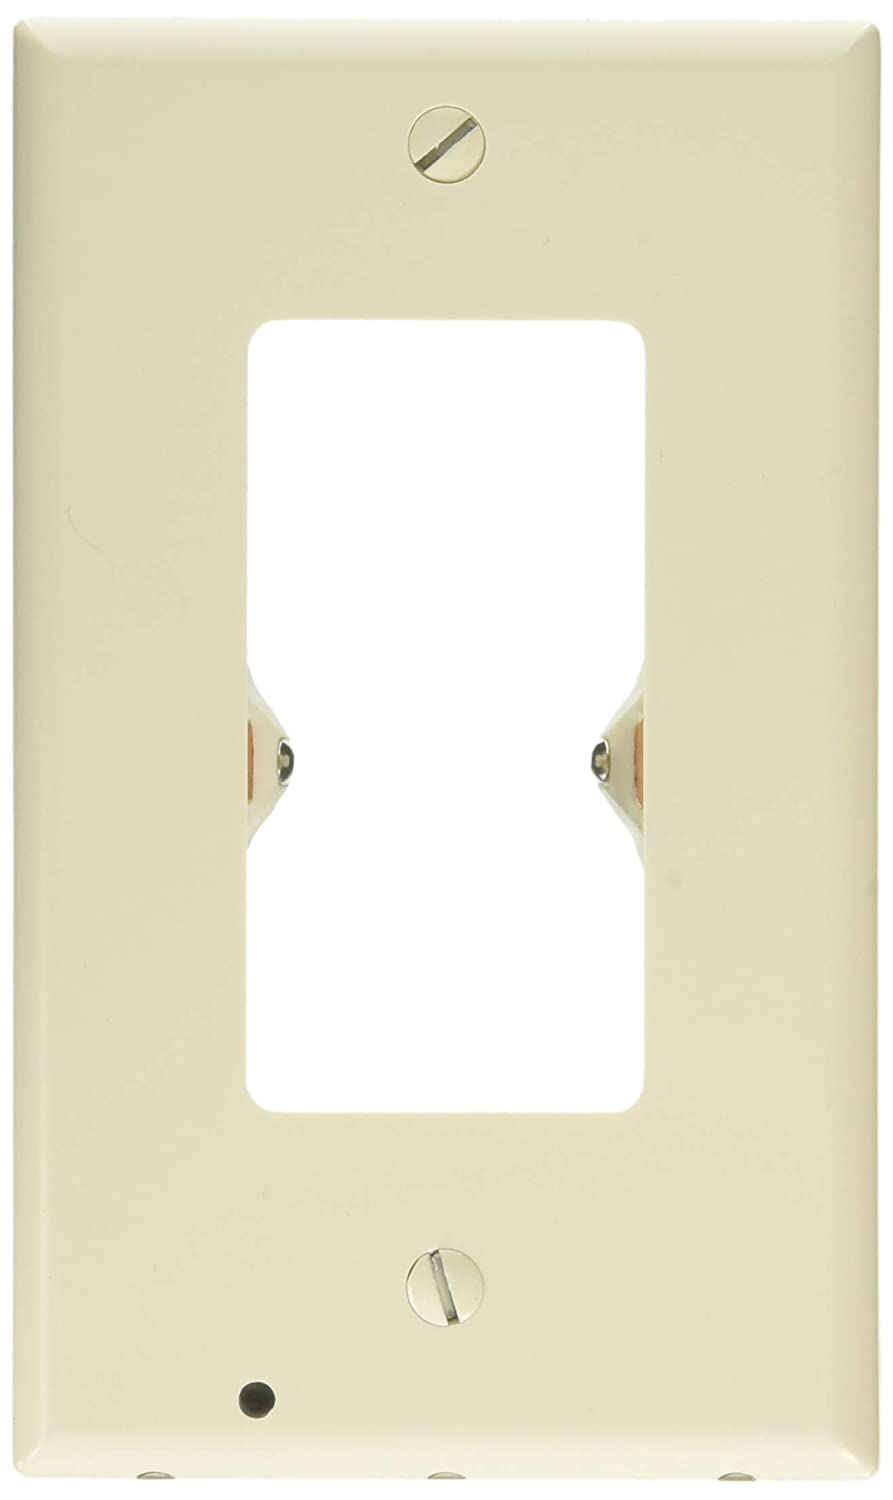 1 Pack SnapPower Guidelight - Outlet Wall Plate With LED Night Lights - No Batteries Or Wires - Installs In Seconds - (Duplex, White) SYNCHKG117015